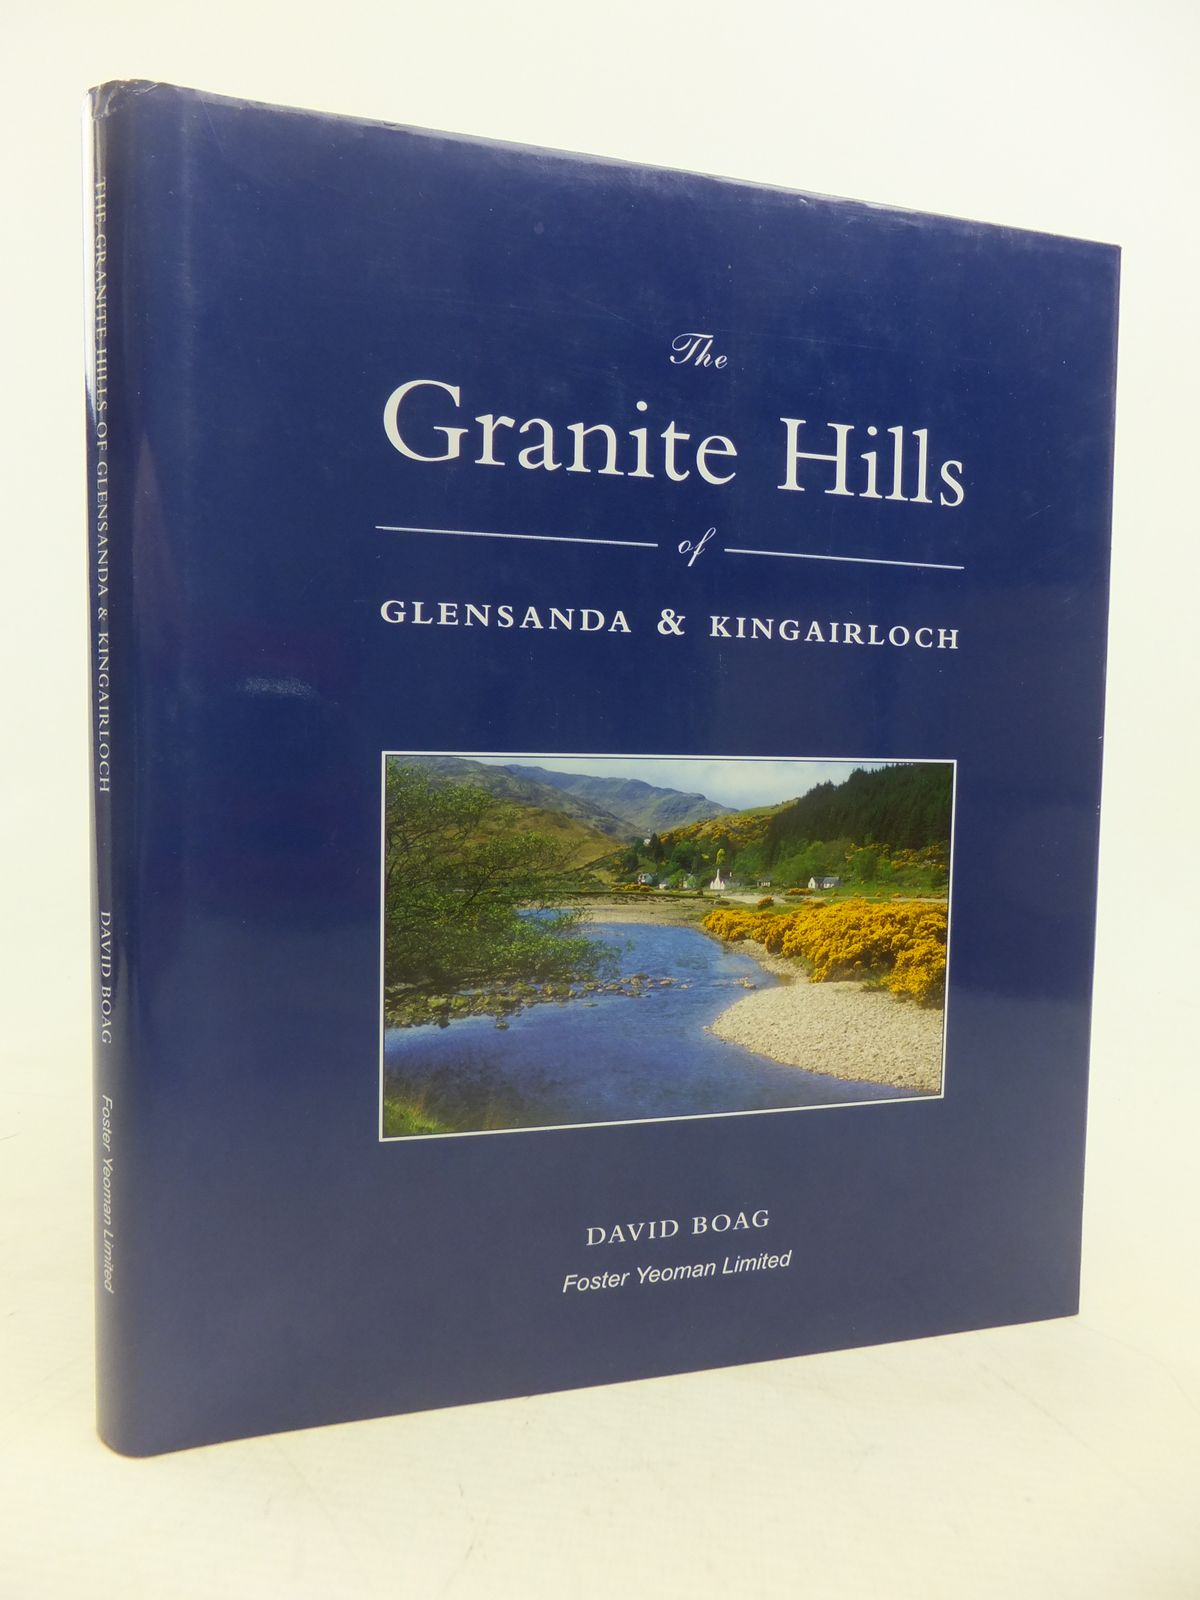 Photo of THE GRANITE HILLS OF GLENSANDA & KINGAIRLOCH written by Boag, David published by Foster Yeoman Ltd (STOCK CODE: 1809560)  for sale by Stella & Rose's Books